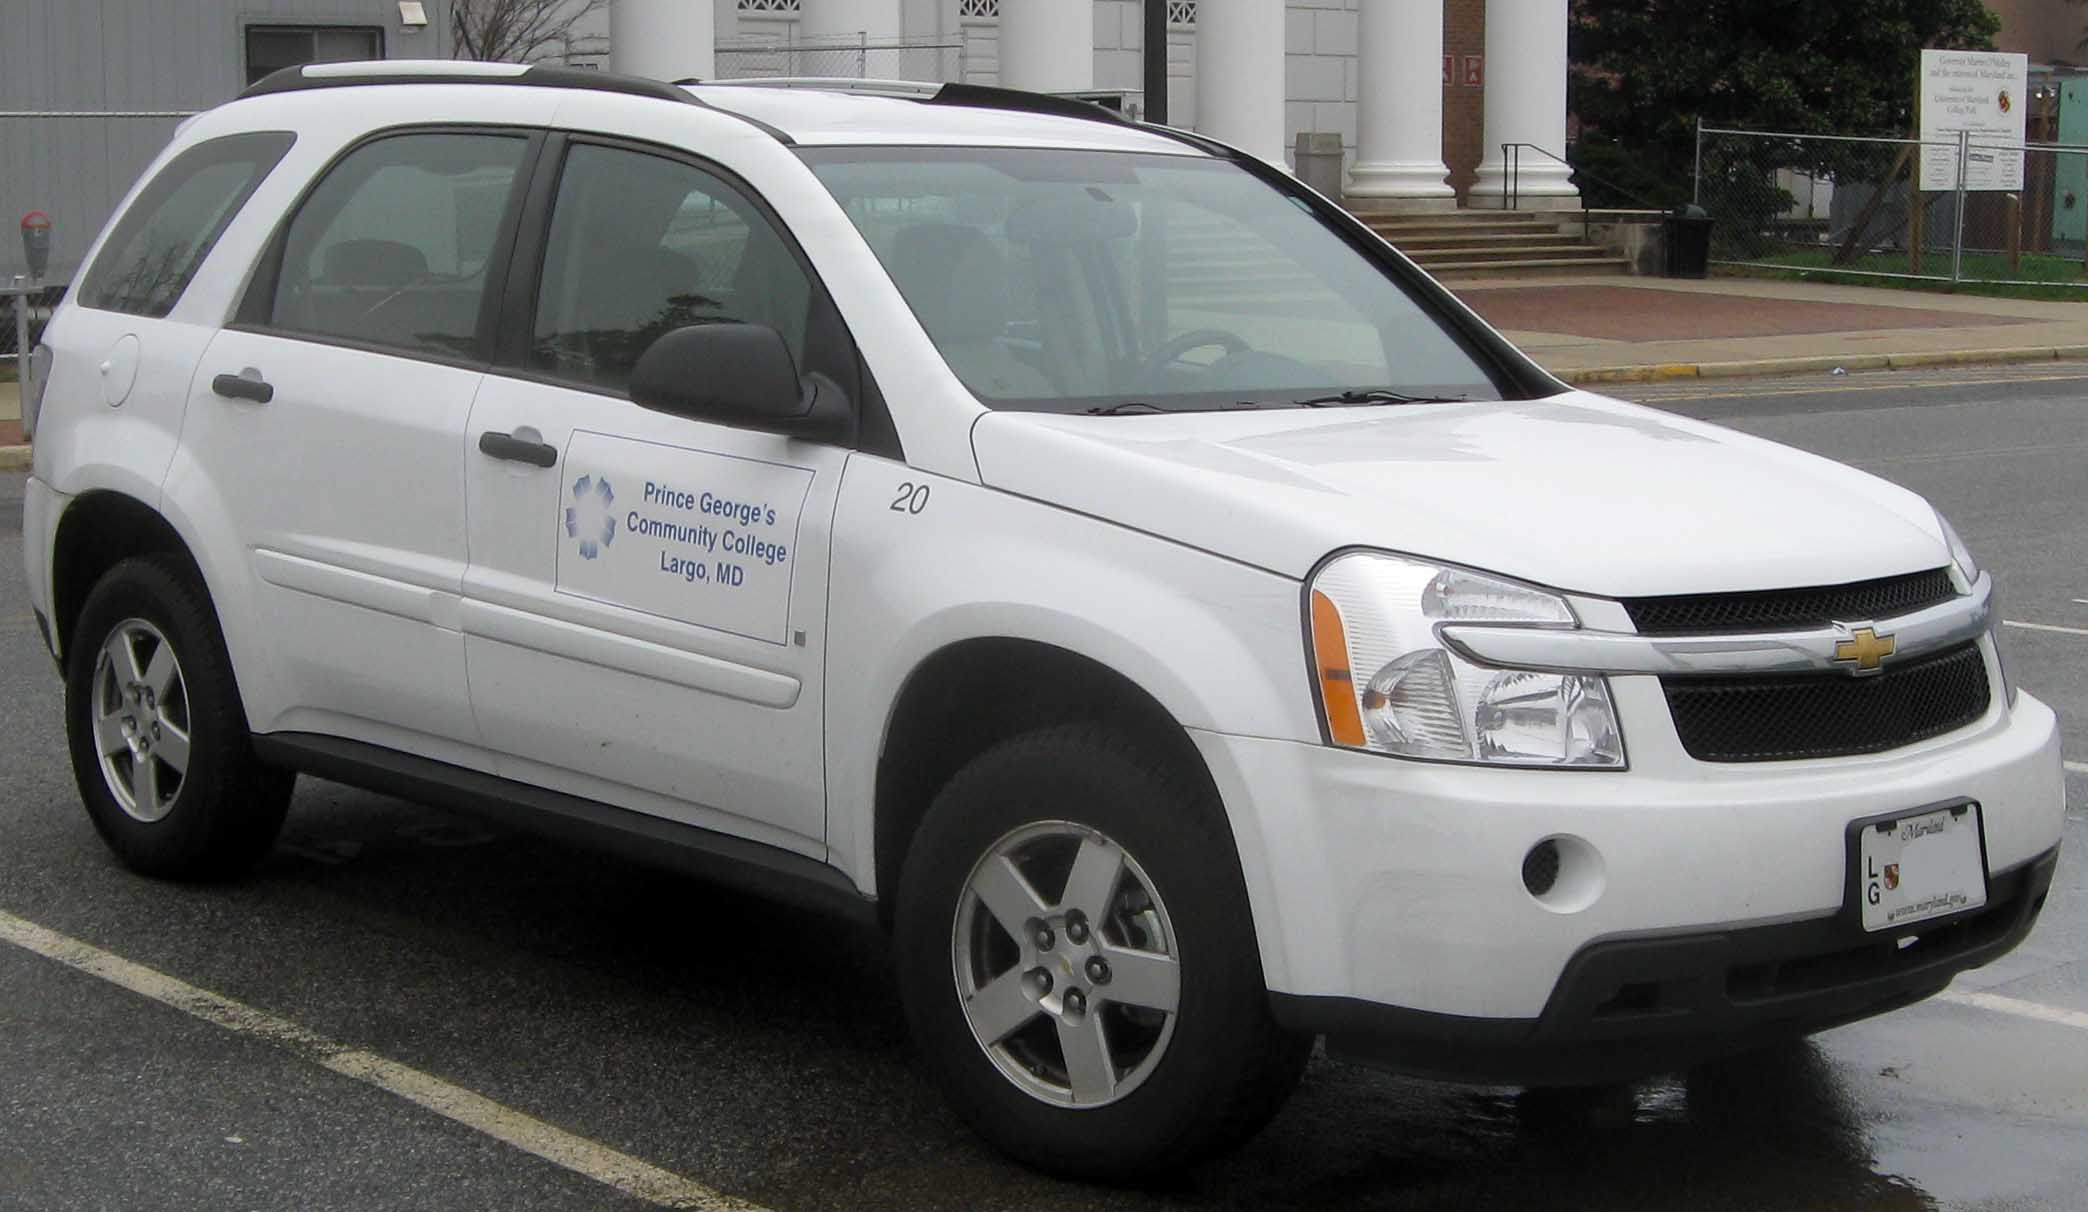 file:1st chevrolet equinox ls - wikimedia commons